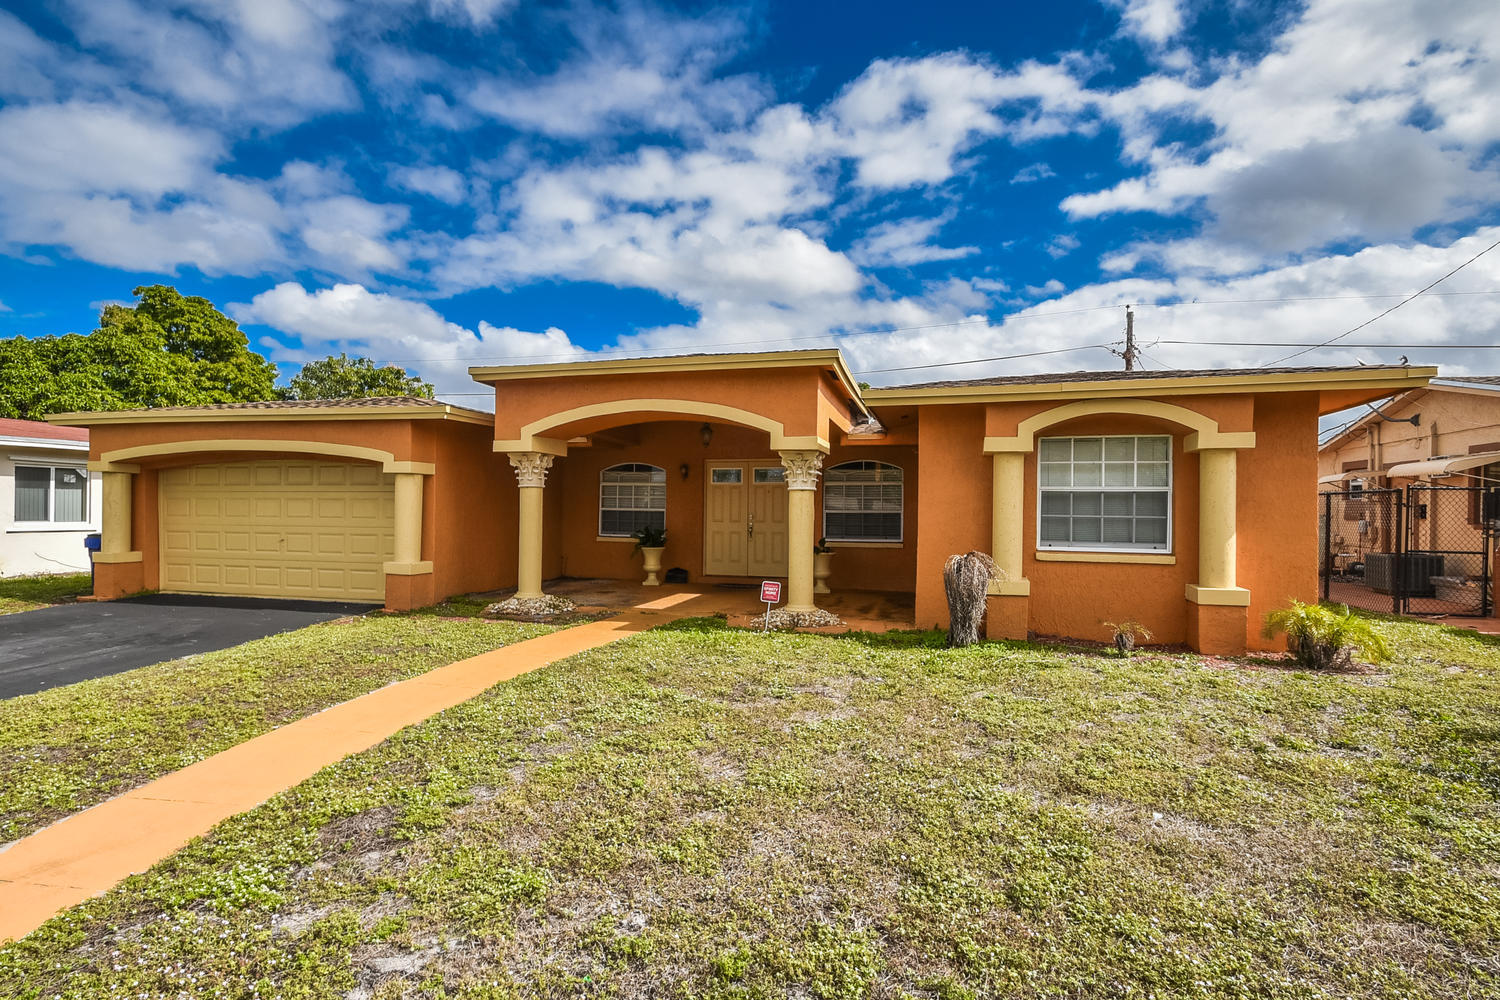 2200 Nw 32nd Terrace, Lauderdale Lakes, FL 33311